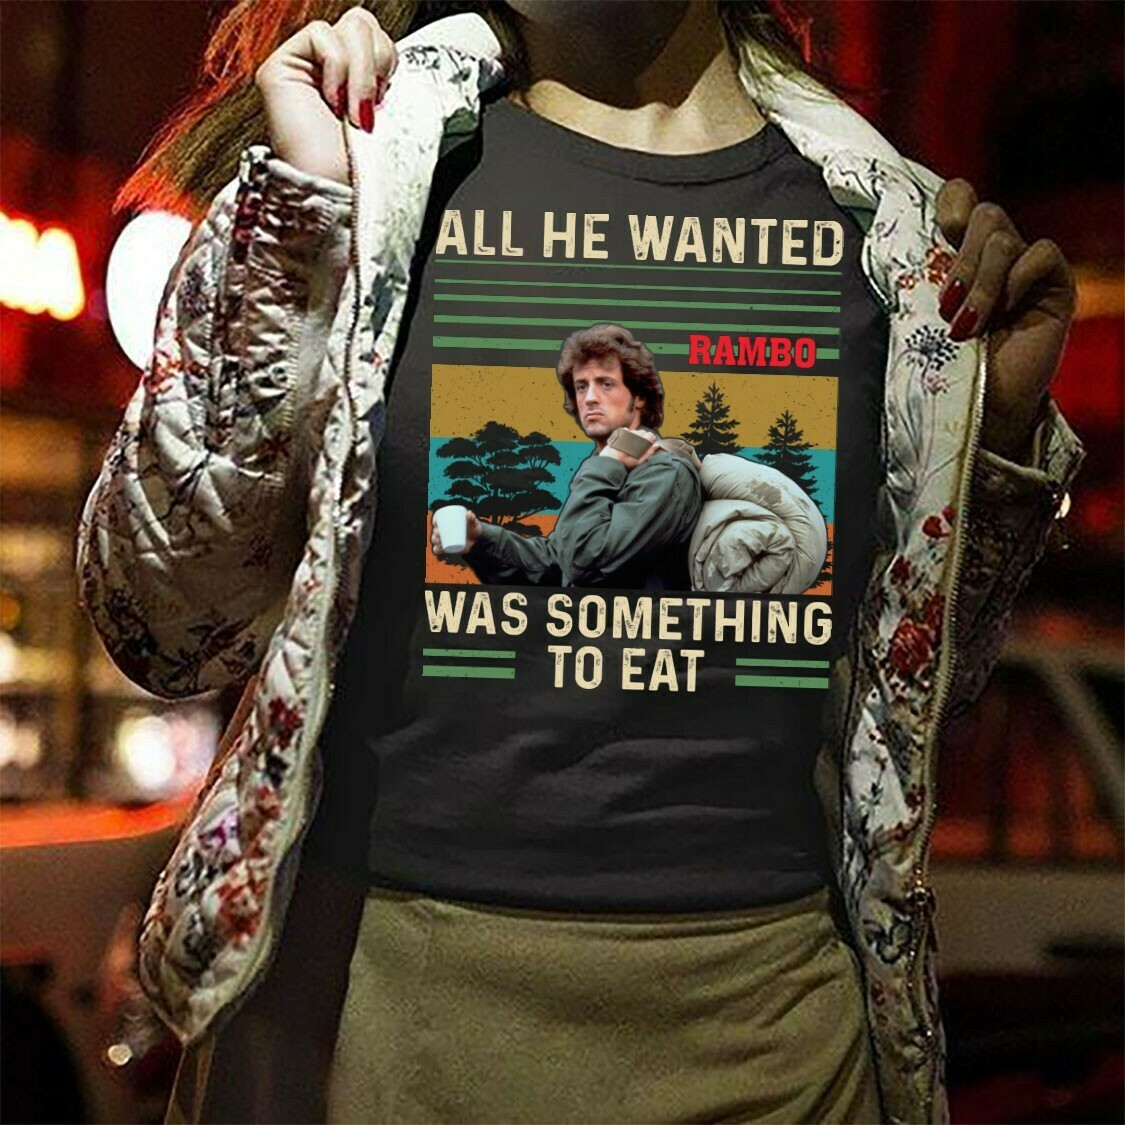 John Rambo All He Wanted Was Something To Eat The Last Blood 2019 Gifts for Friday The 13th Villains Halloween 80's Horror movie T Shirt Long Sleeve Sweatshirt Hoodie Jolly Family Gifts